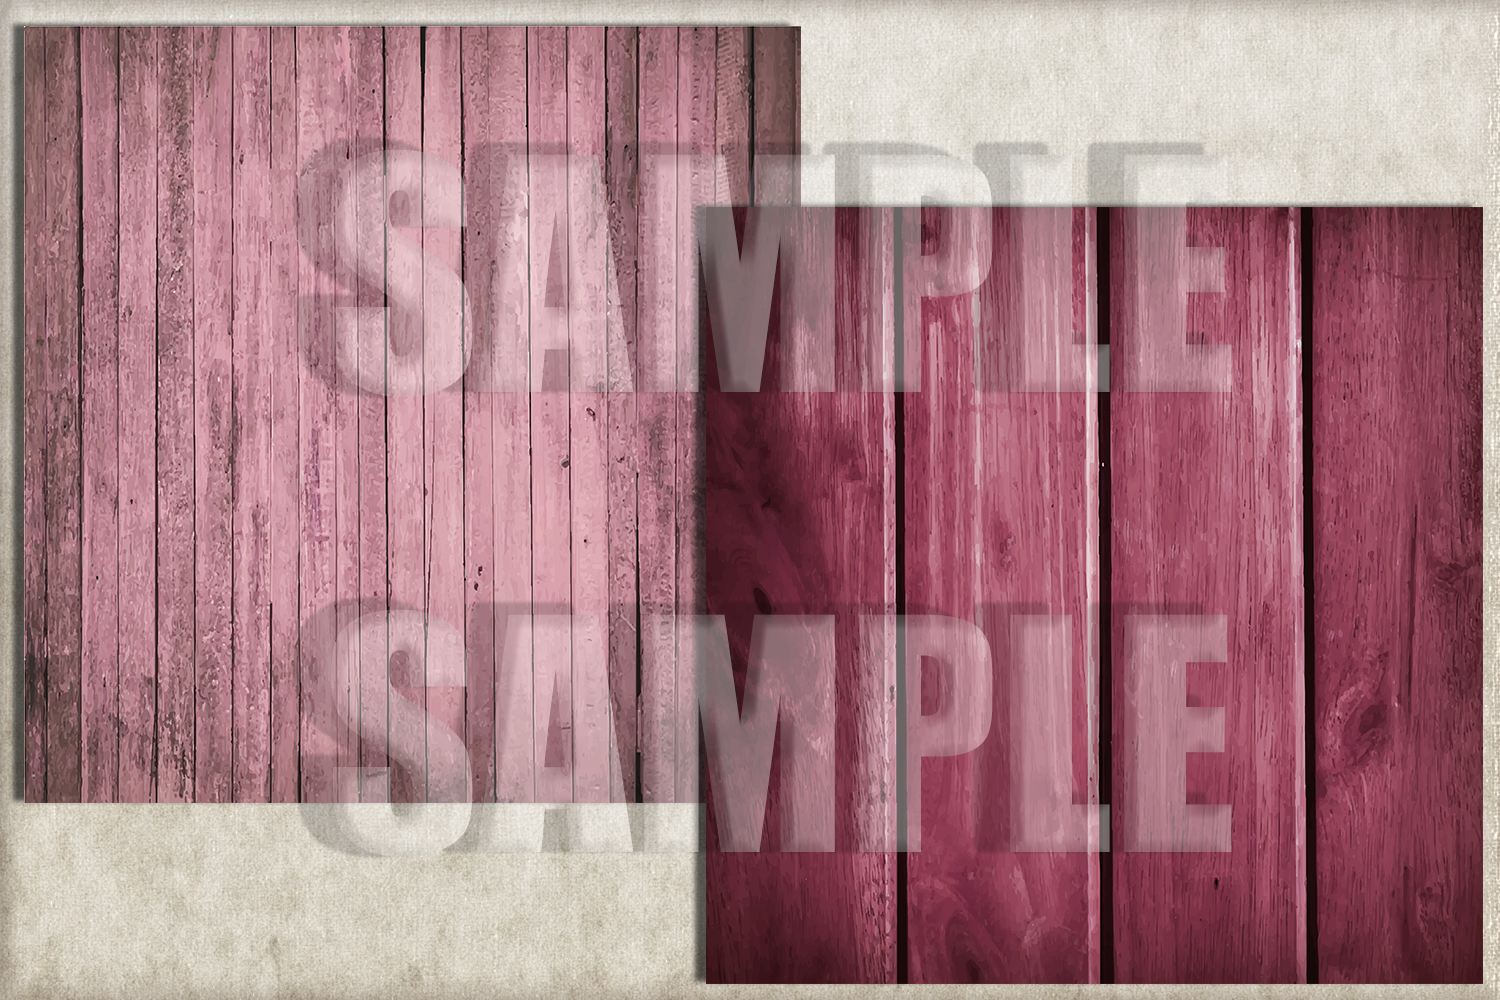 Pink Rustic Wood Digital Paper, Digital Background example image 2